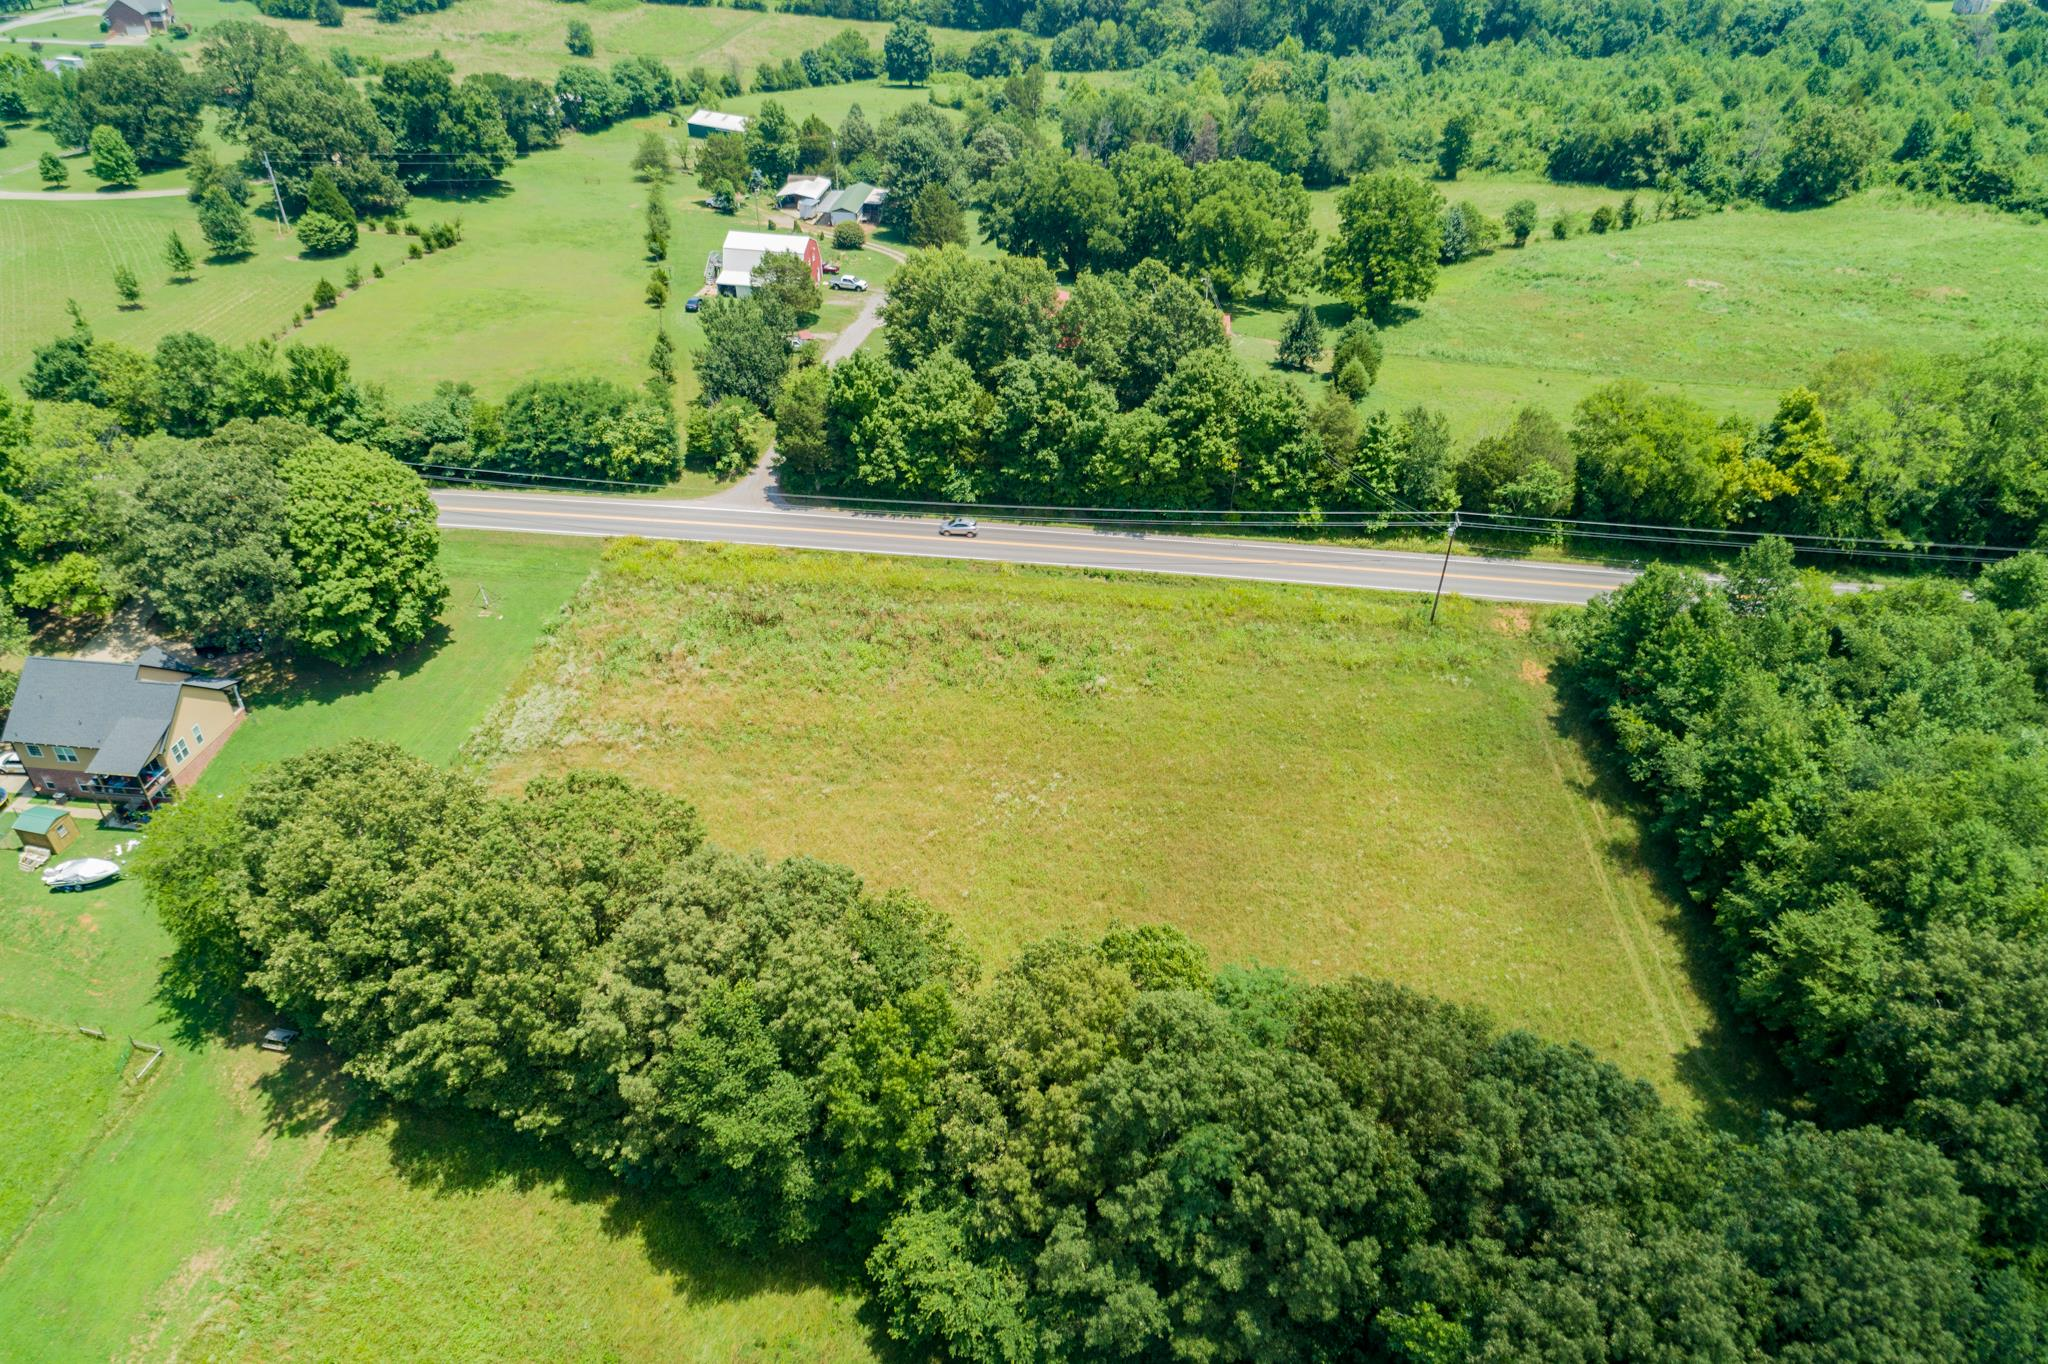 3472 Highway 48 - Lot 3, Cunningham, TN 37052 - Cunningham, TN real estate listing